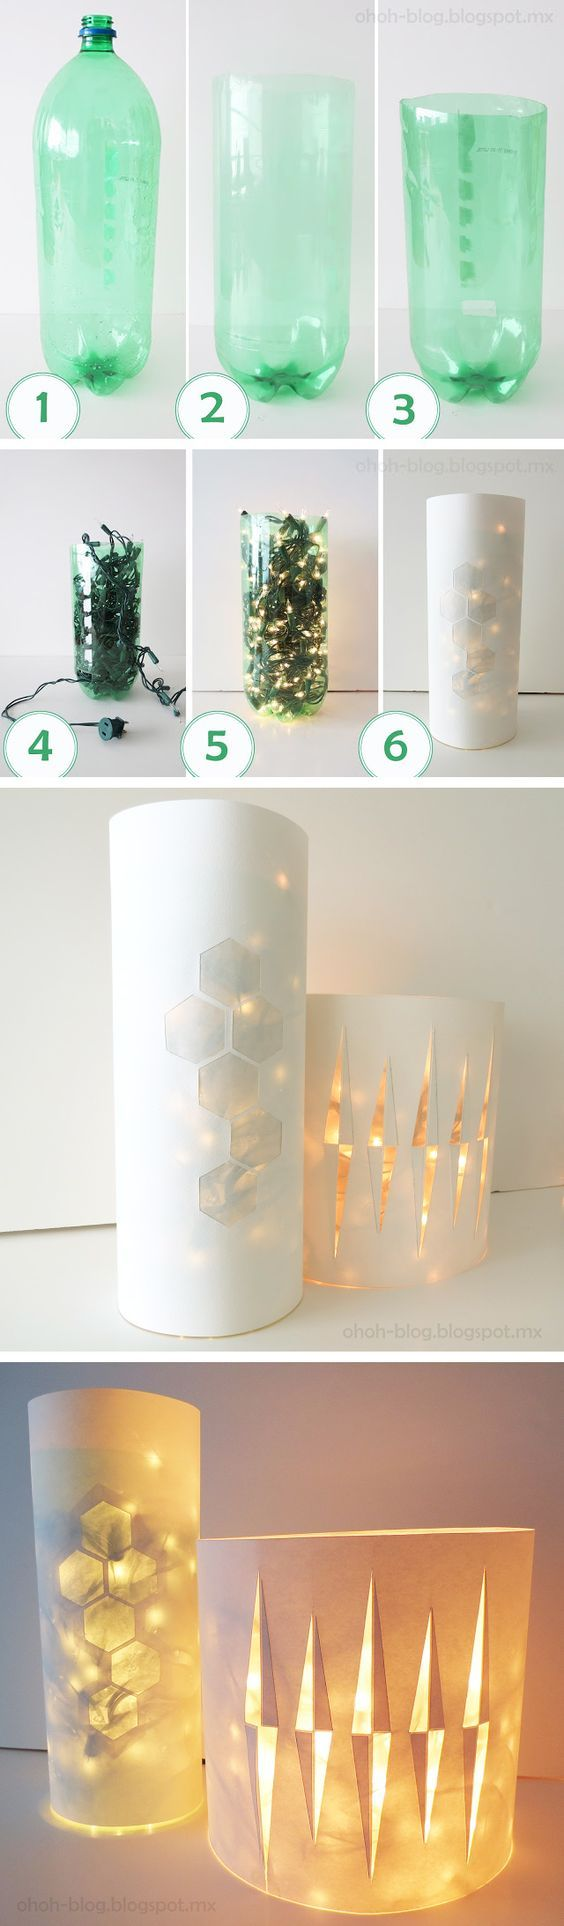 Best 20 diy recycle ideas on pinterest for Useful things from waste bottles